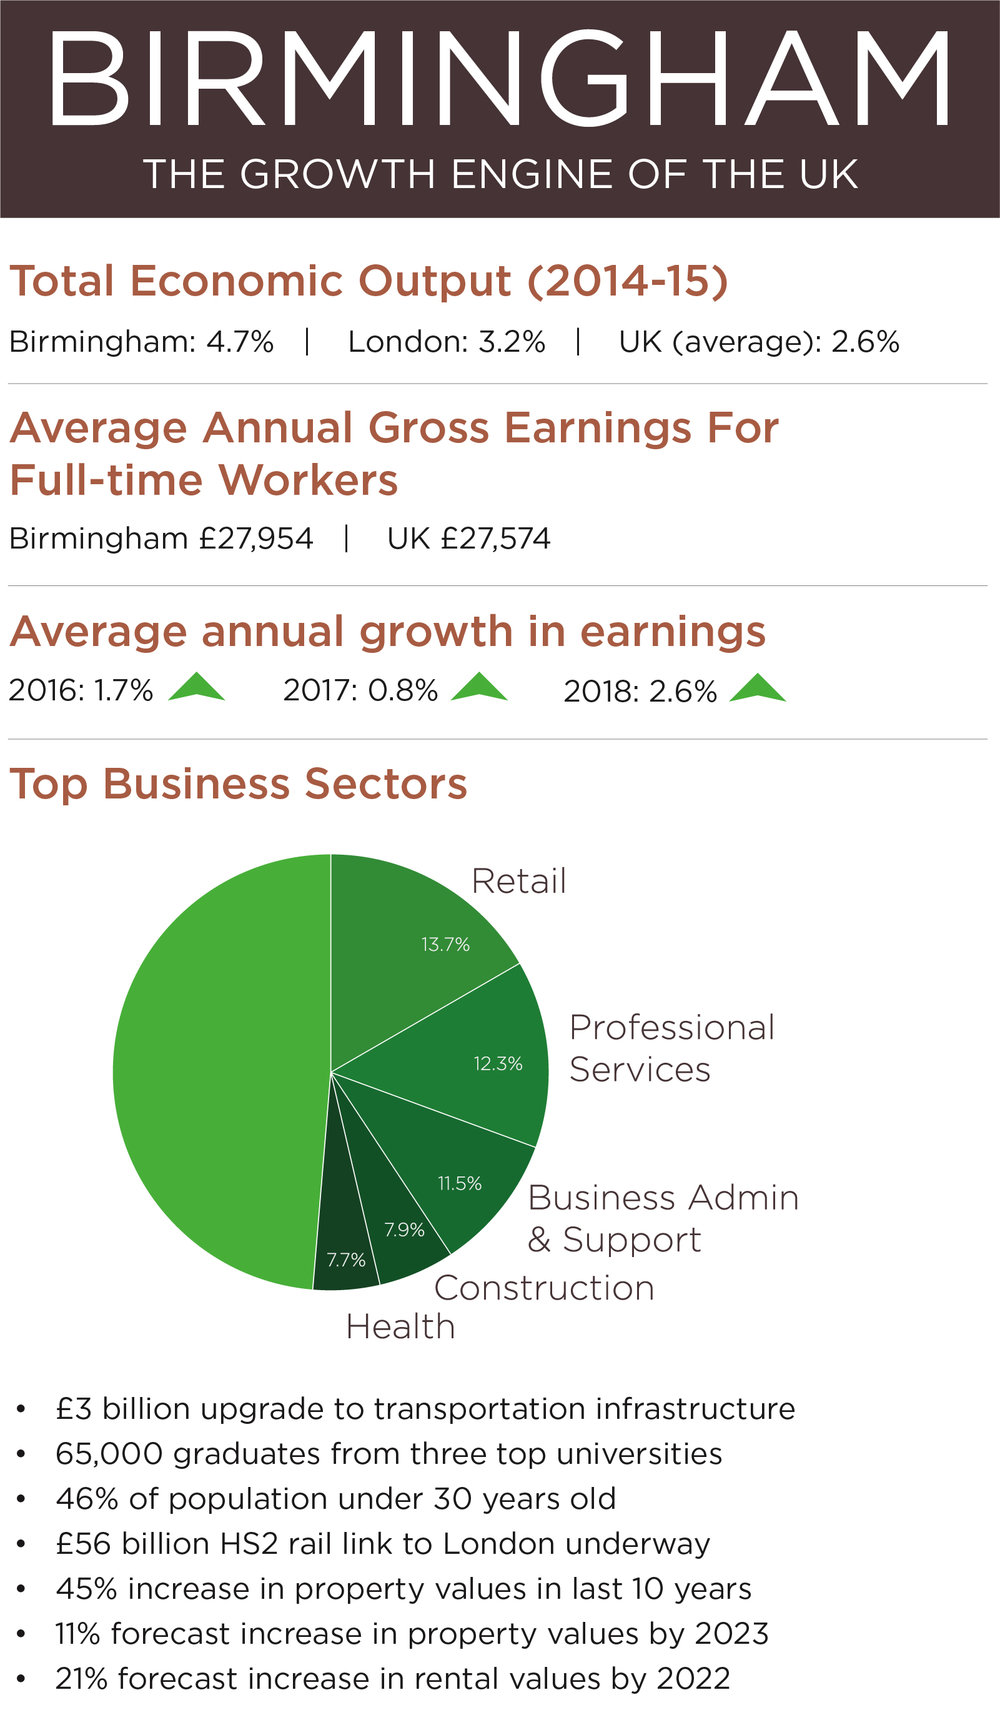 Stats collected from Greater Birmingham Council